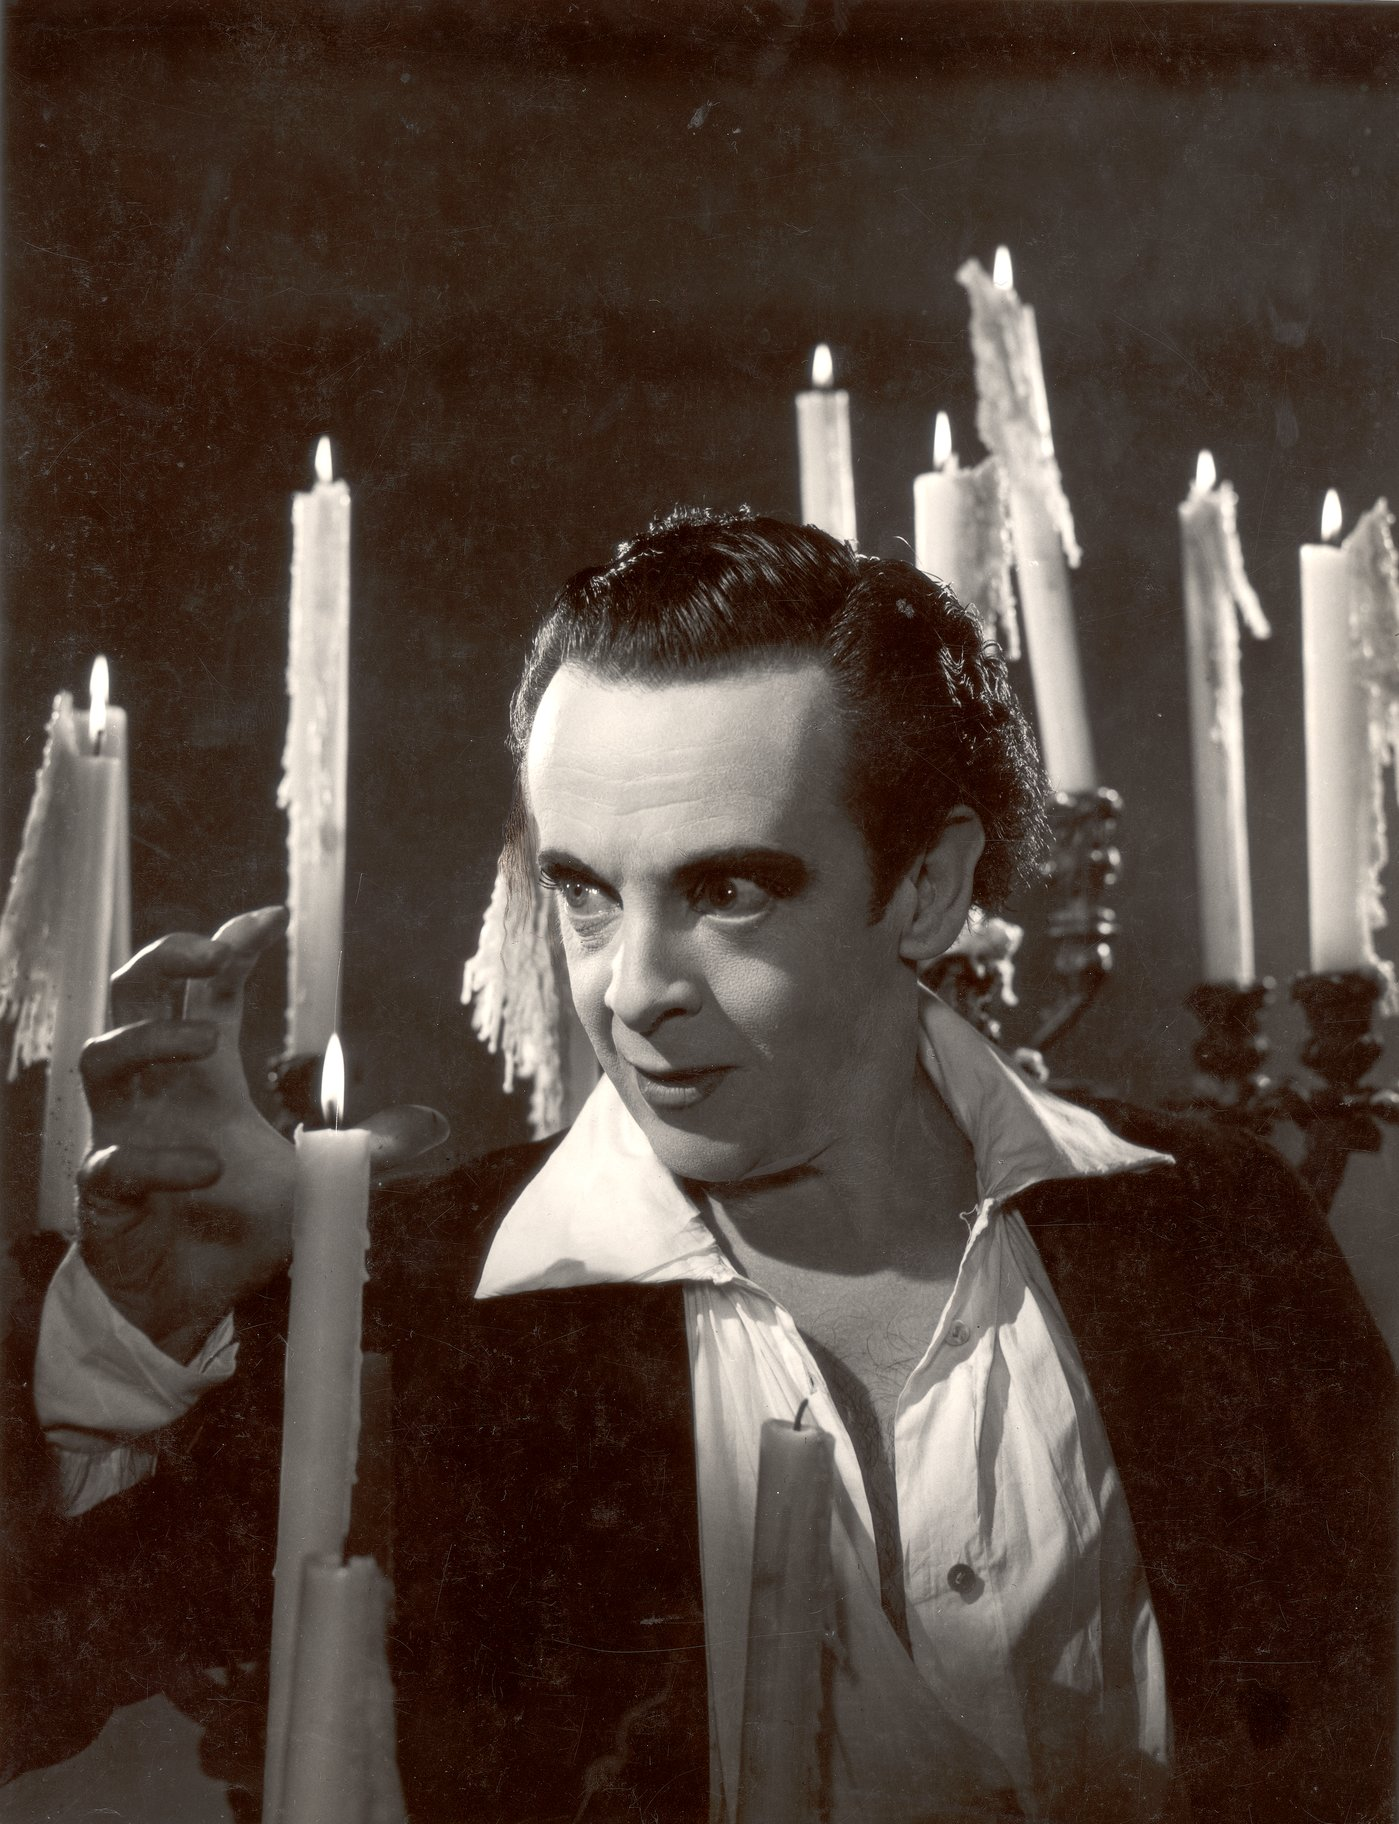 Robert Helpmann as Hamlet, surrounded by candles.